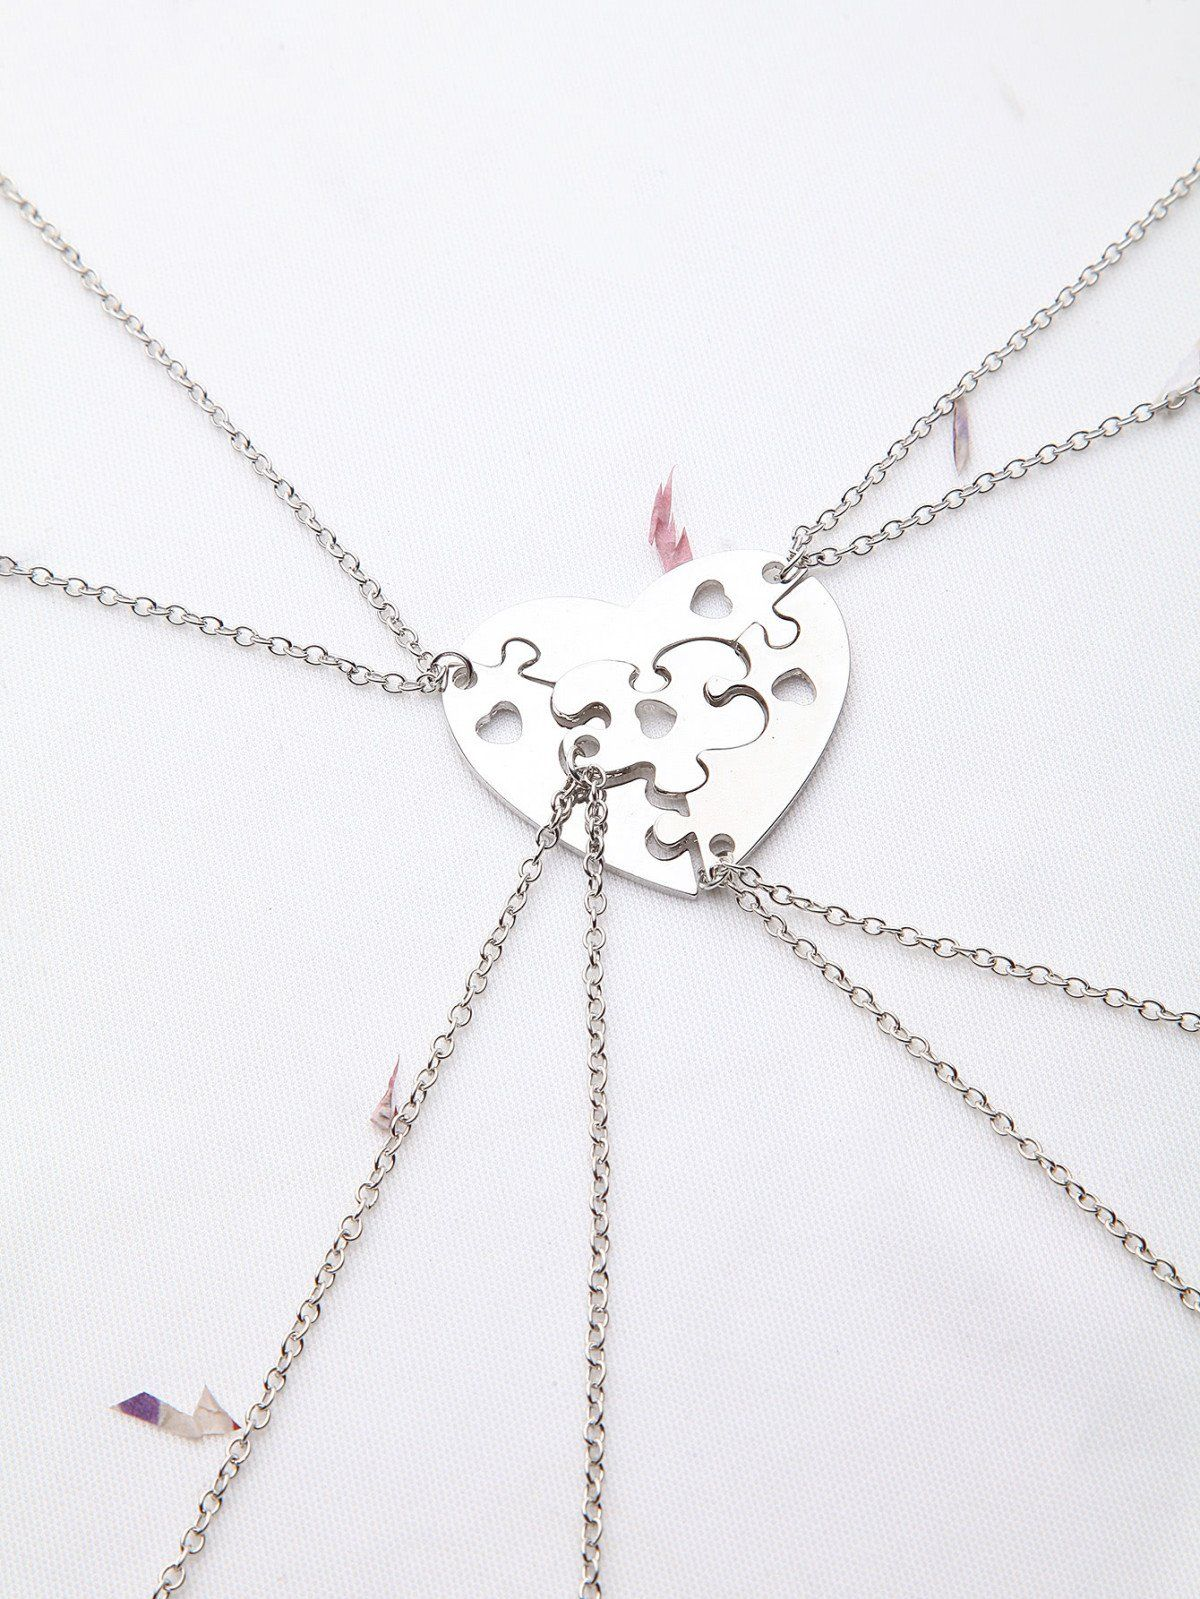 Silver heart hollow out necklace set silver color stone and metals